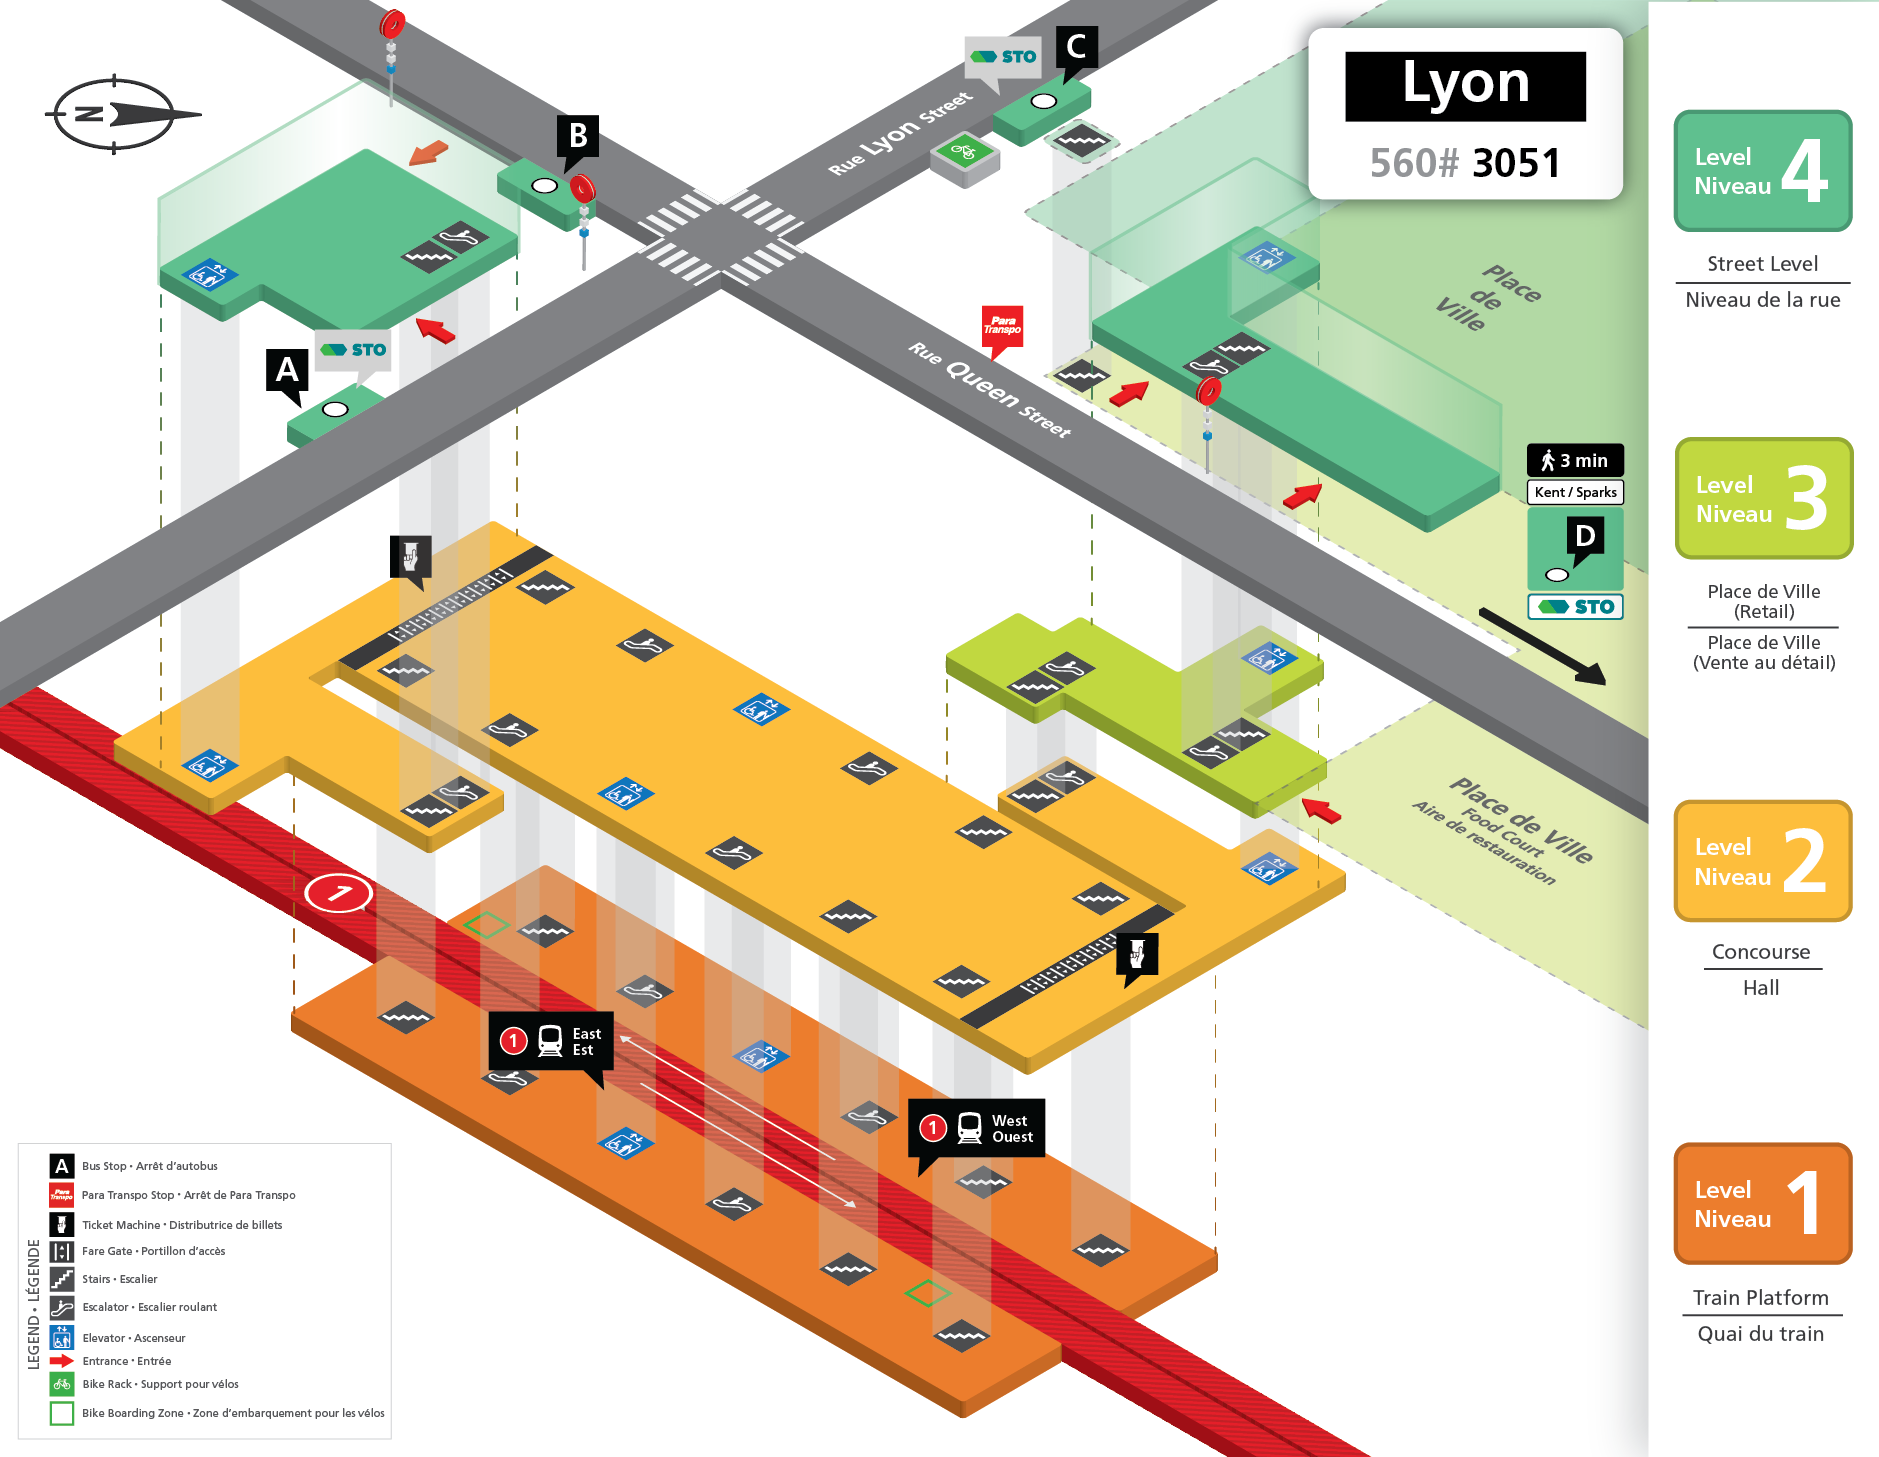 New Lyon Station layout